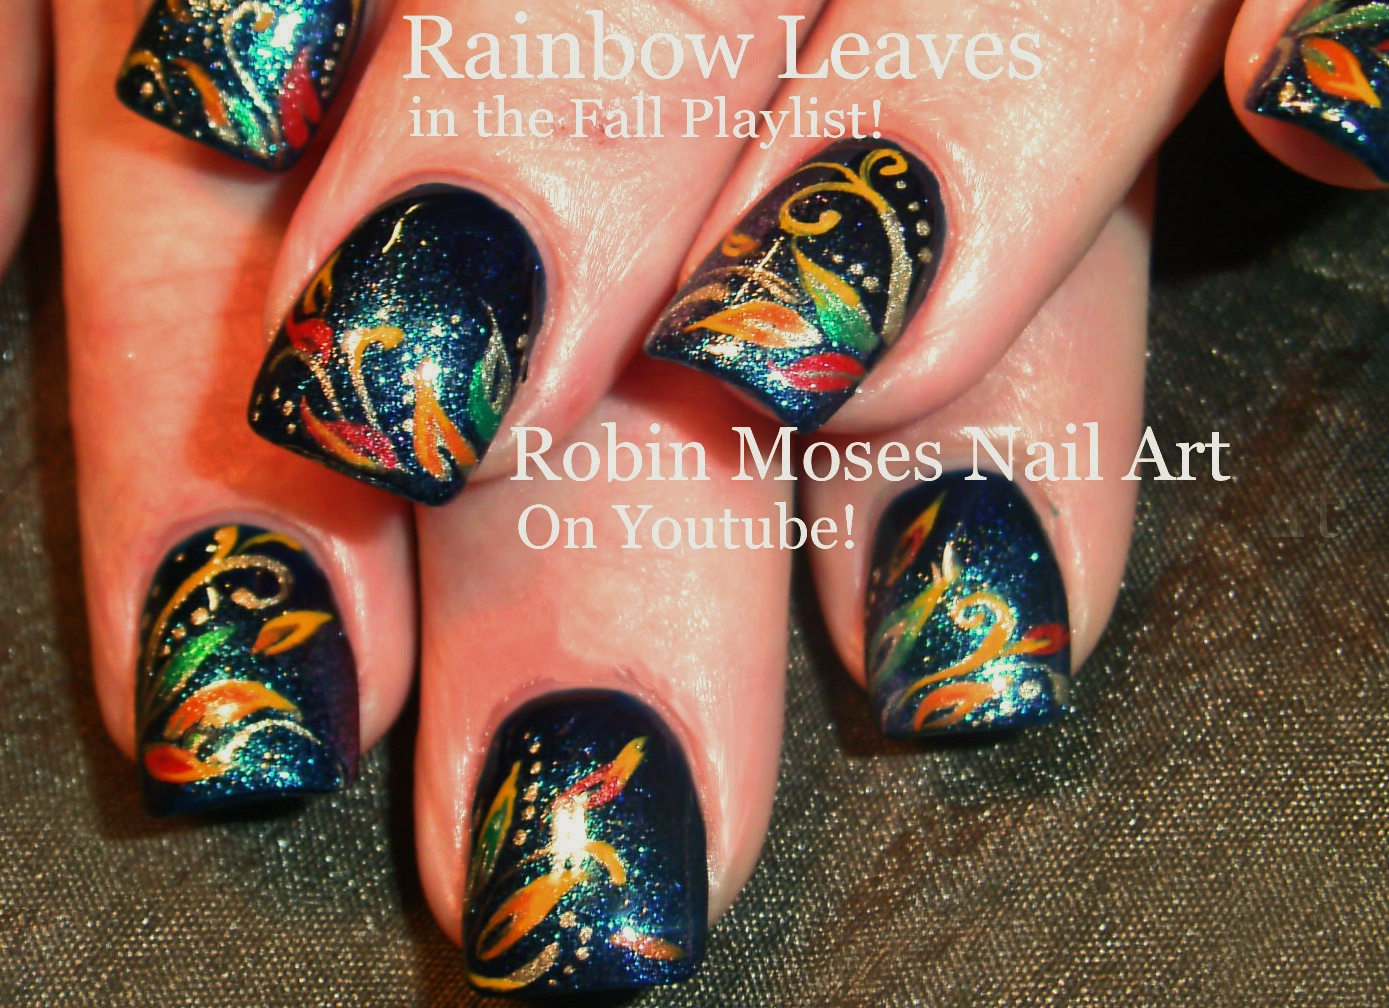 Robin moses nail art fall nail designs fall designs fall nail rainbow leaves nail art design fun autumn glitter leaf nails tutorial prinsesfo Image collections